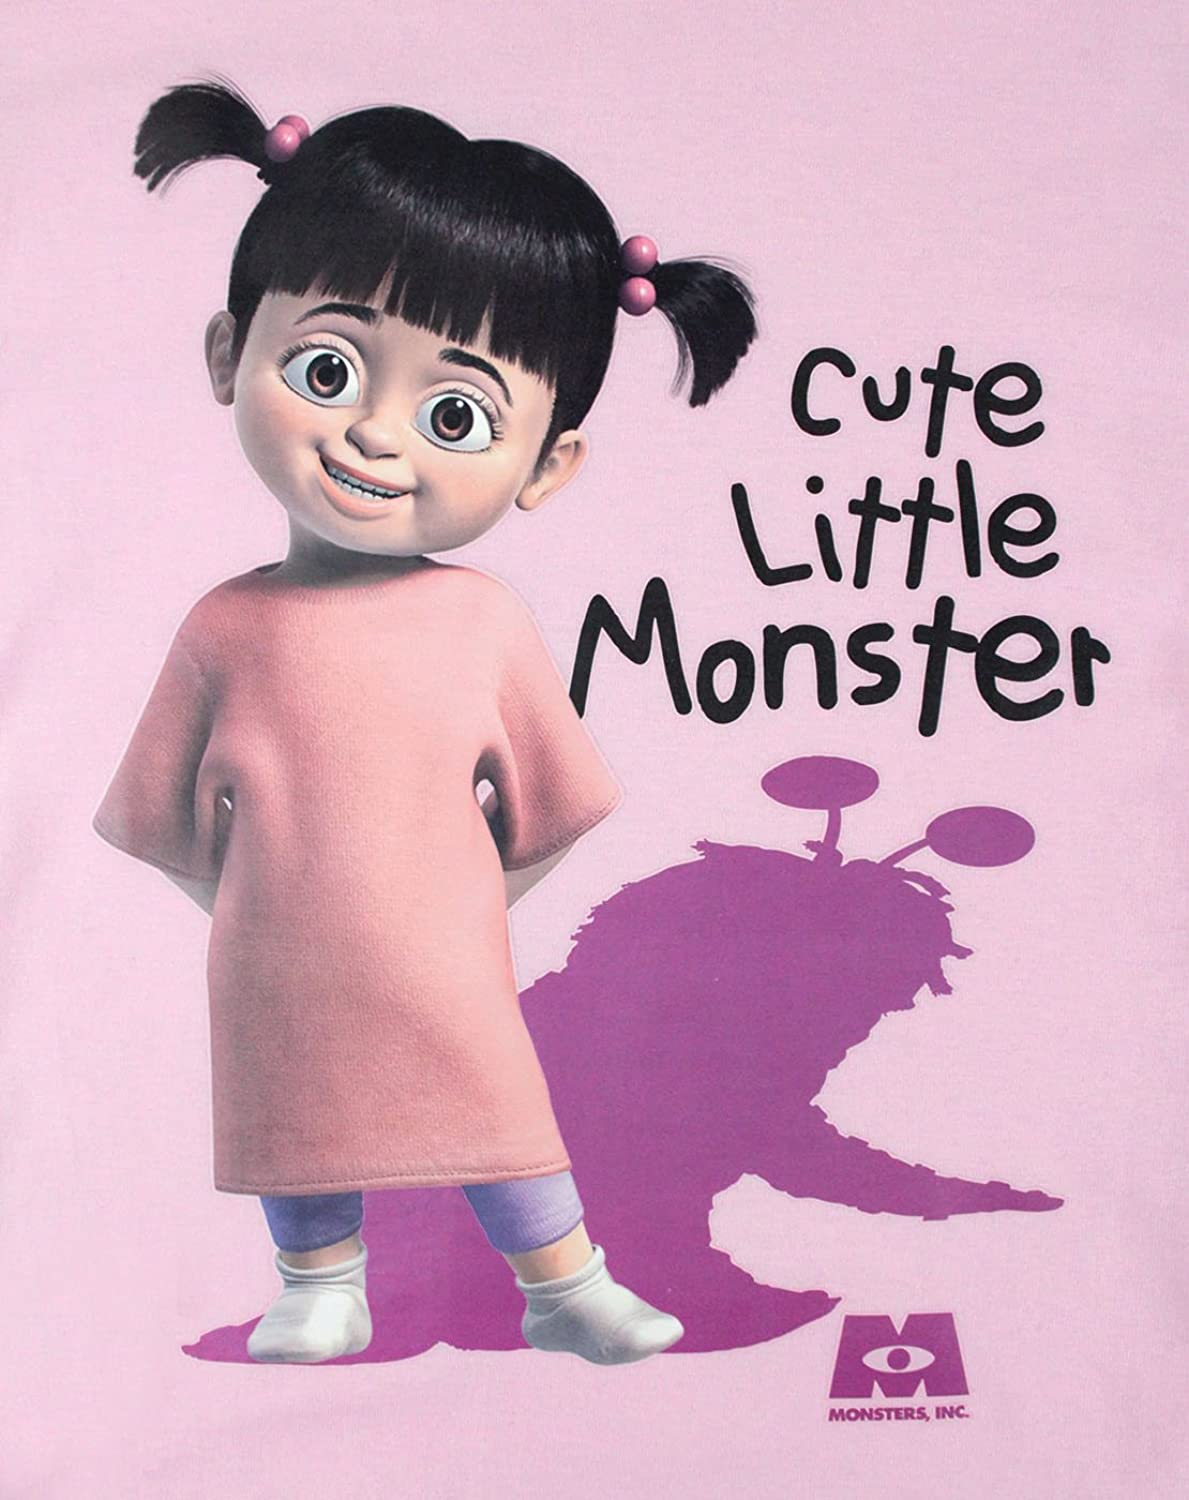 Uncategorized Monsters Inc Boo amazon com official monsters inc boo cute little monster girls t shirt clothing